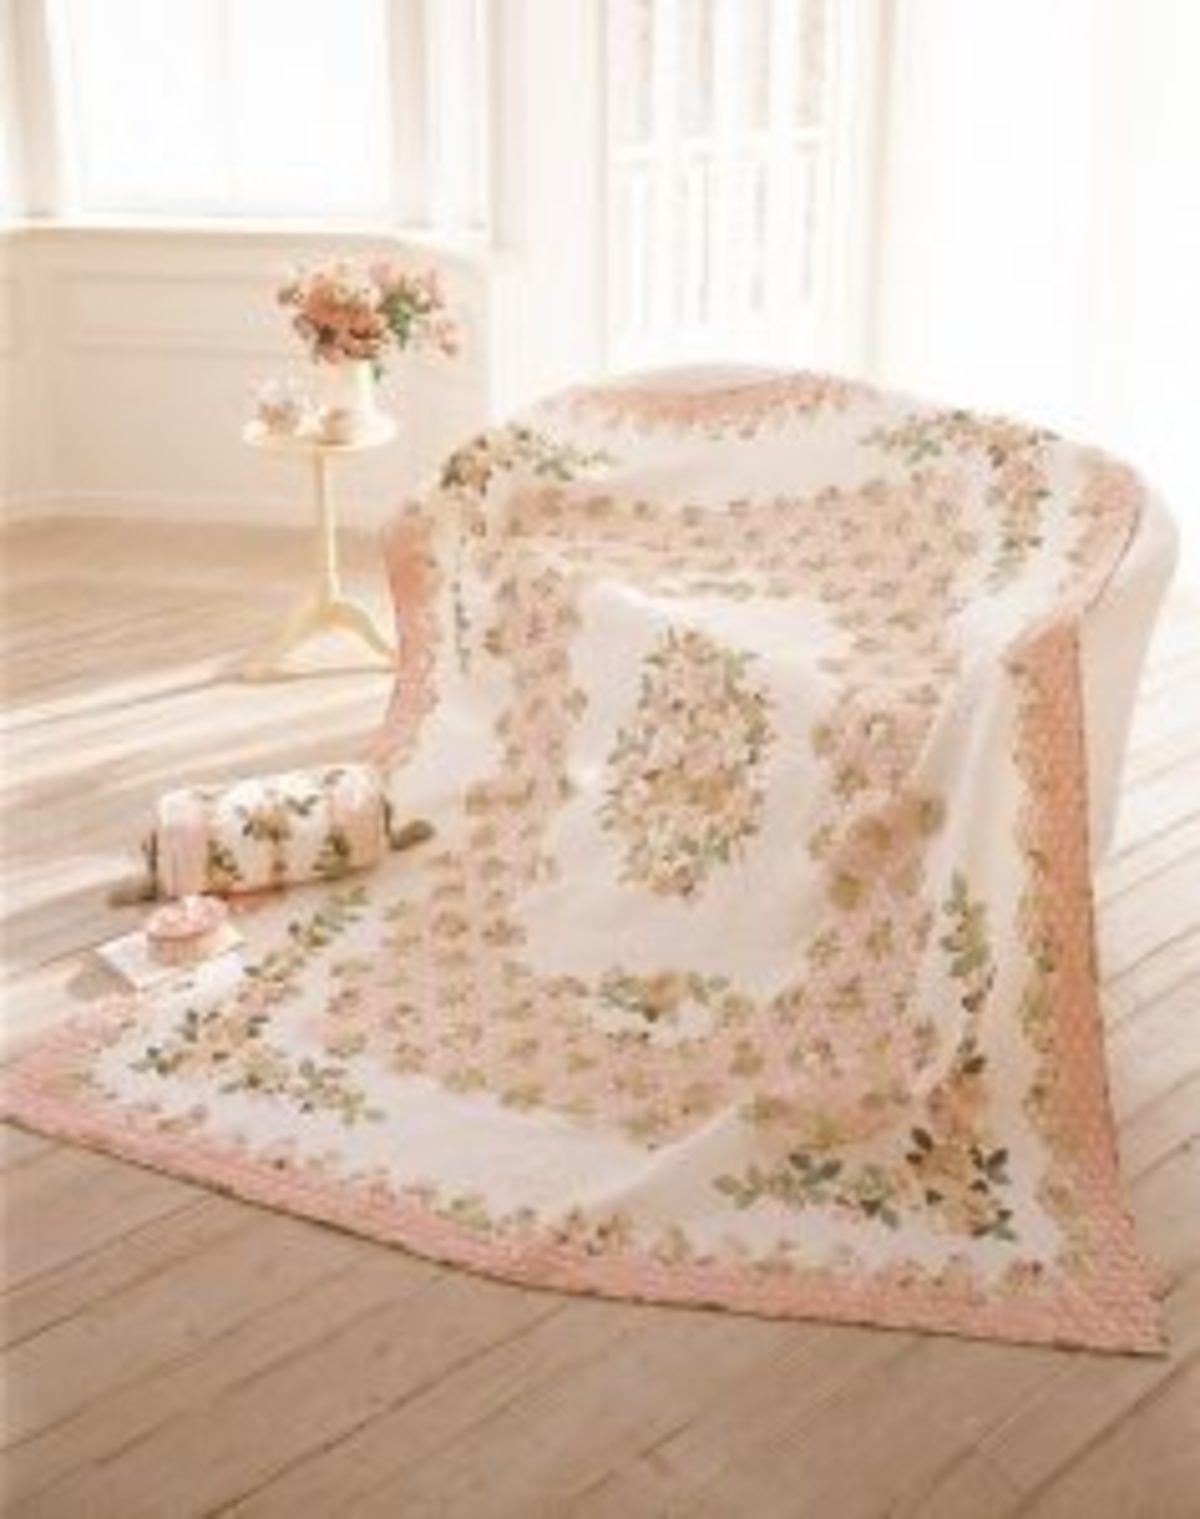 Quilt Japan roses roses